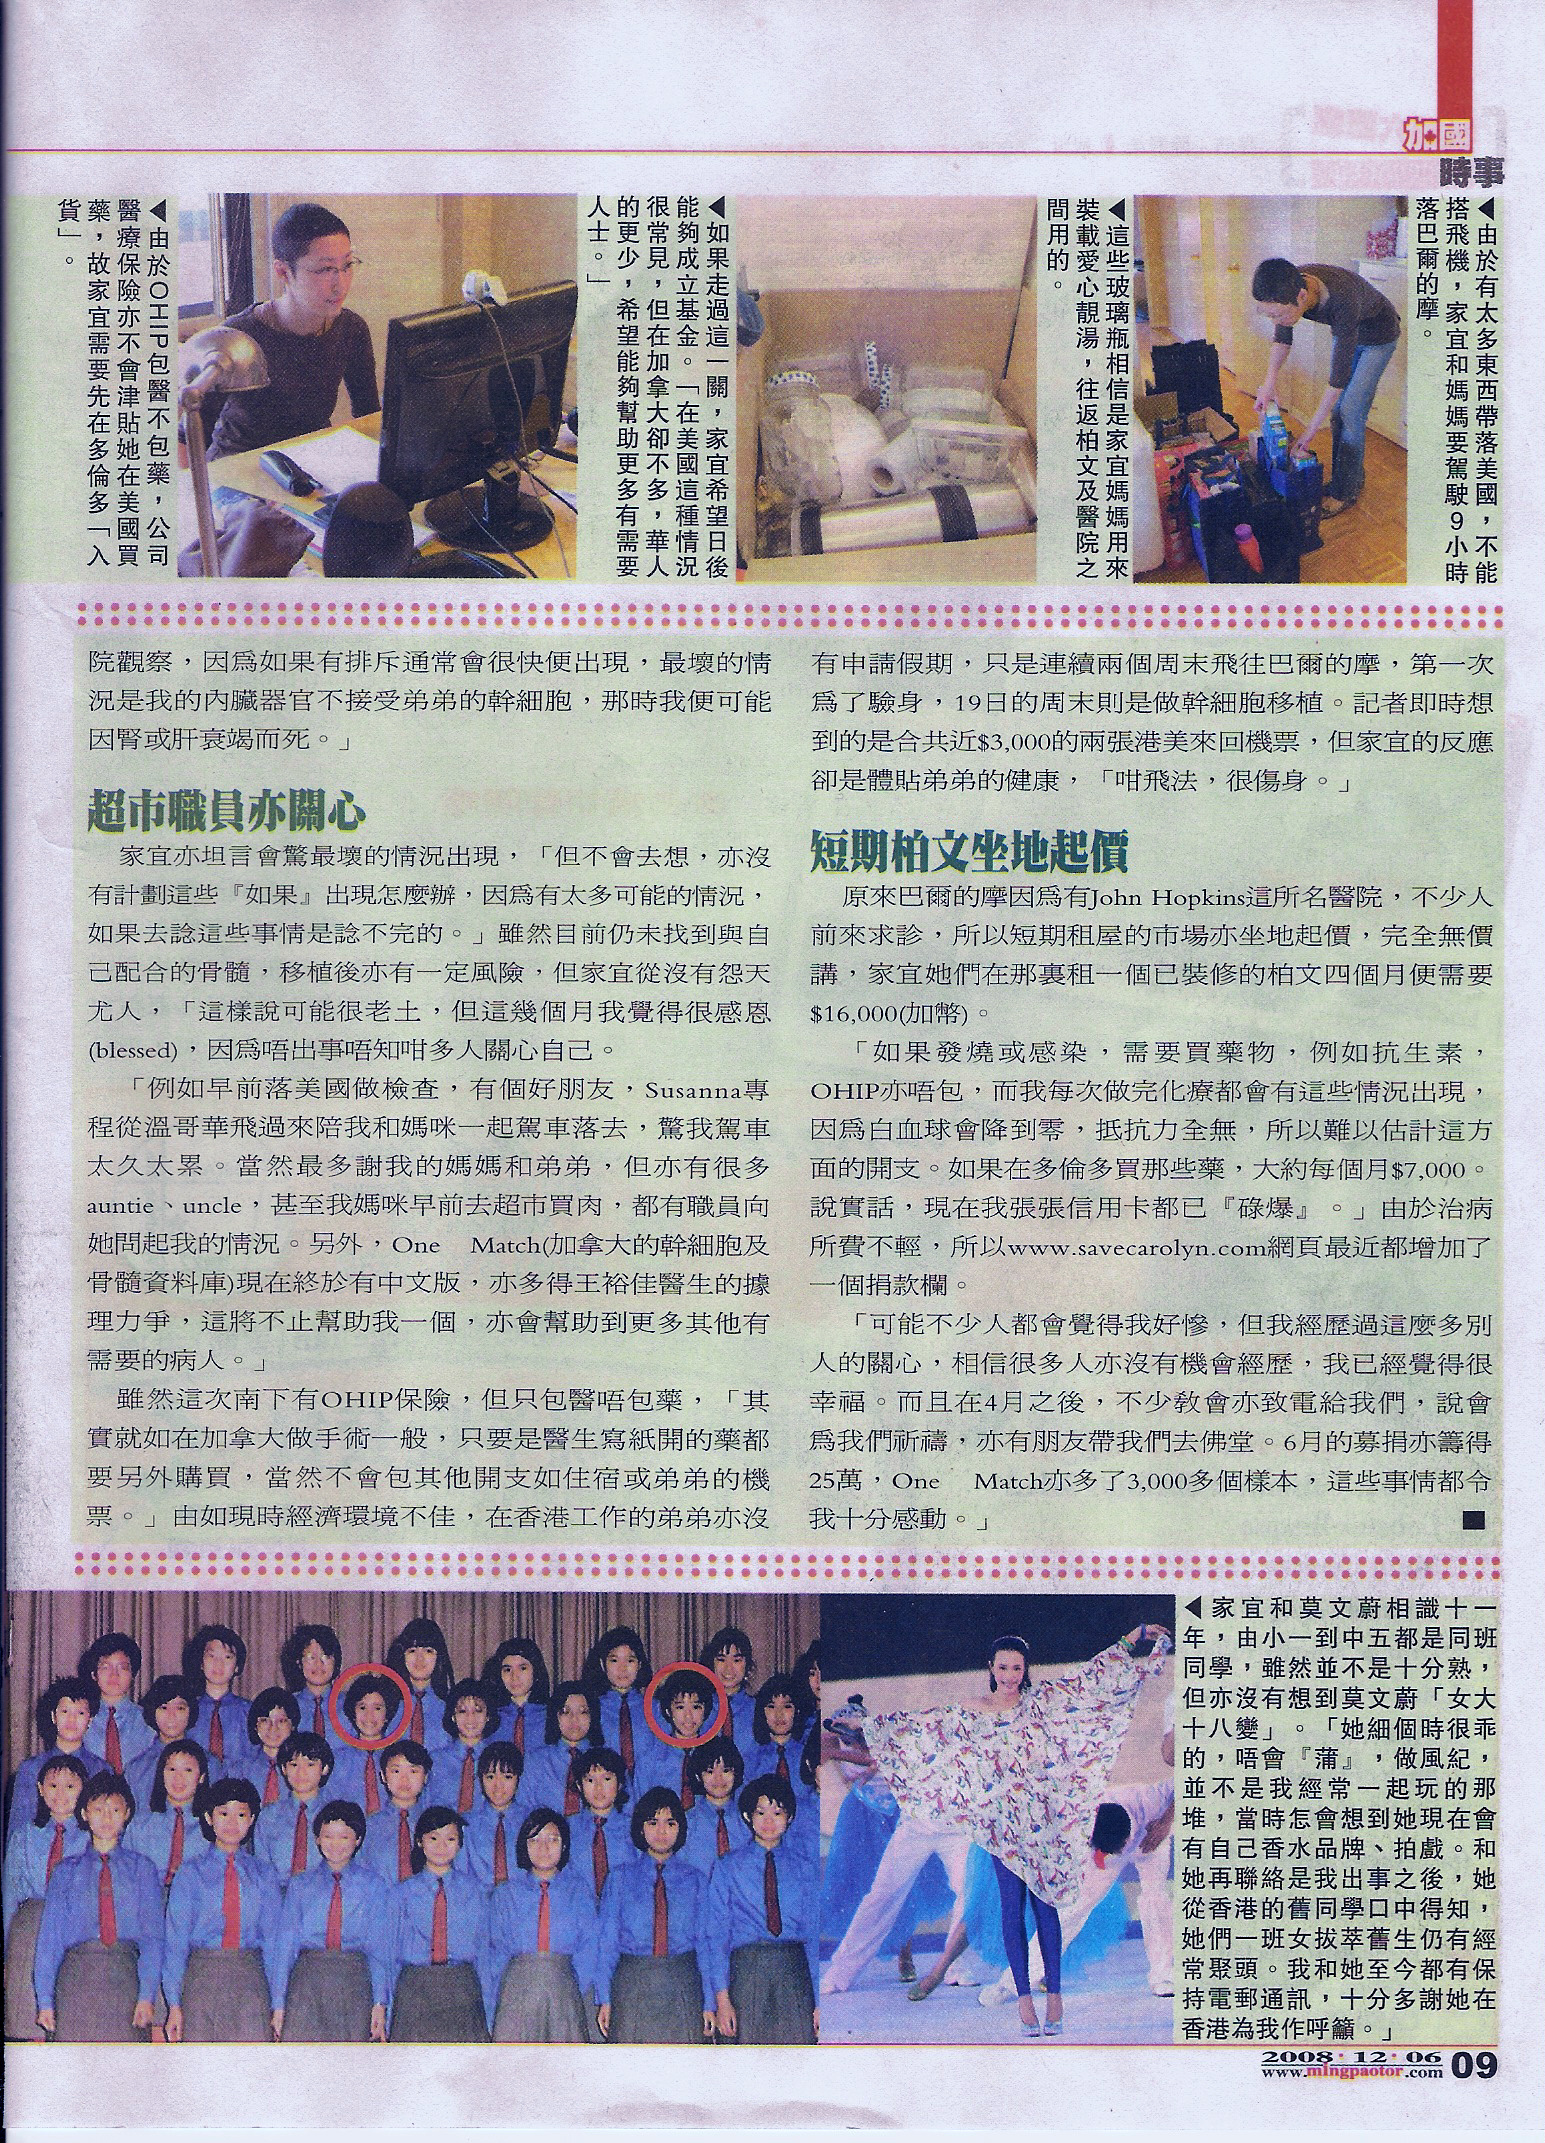 mingpao-sat-supplement-dec062008-0021